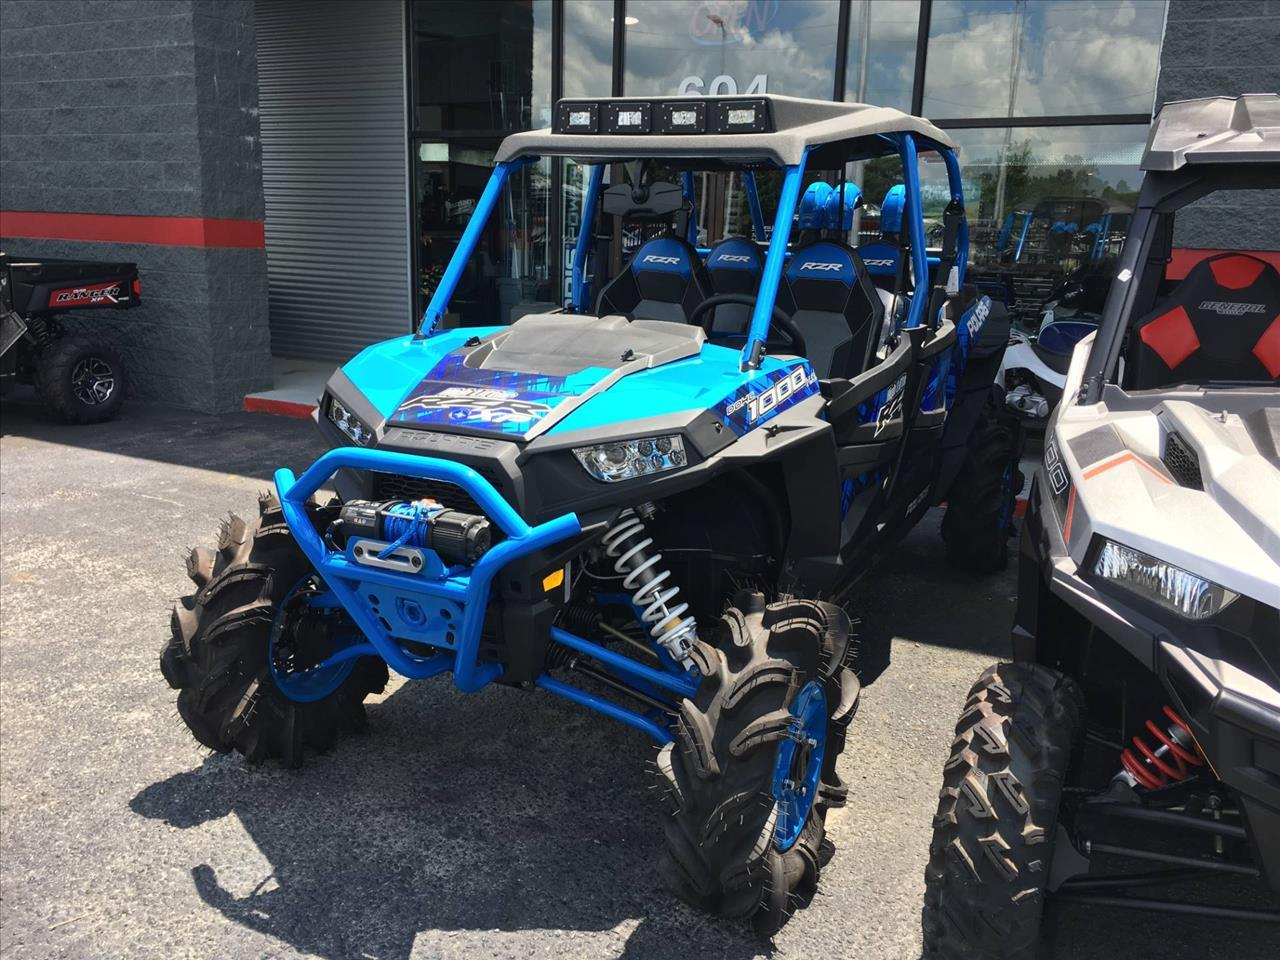 2017 Polaris RZR XP 4 1000 EPS High Lifter  for sale at Vehicle Network, LLC - Performance East, INC. in Goldsboro NC